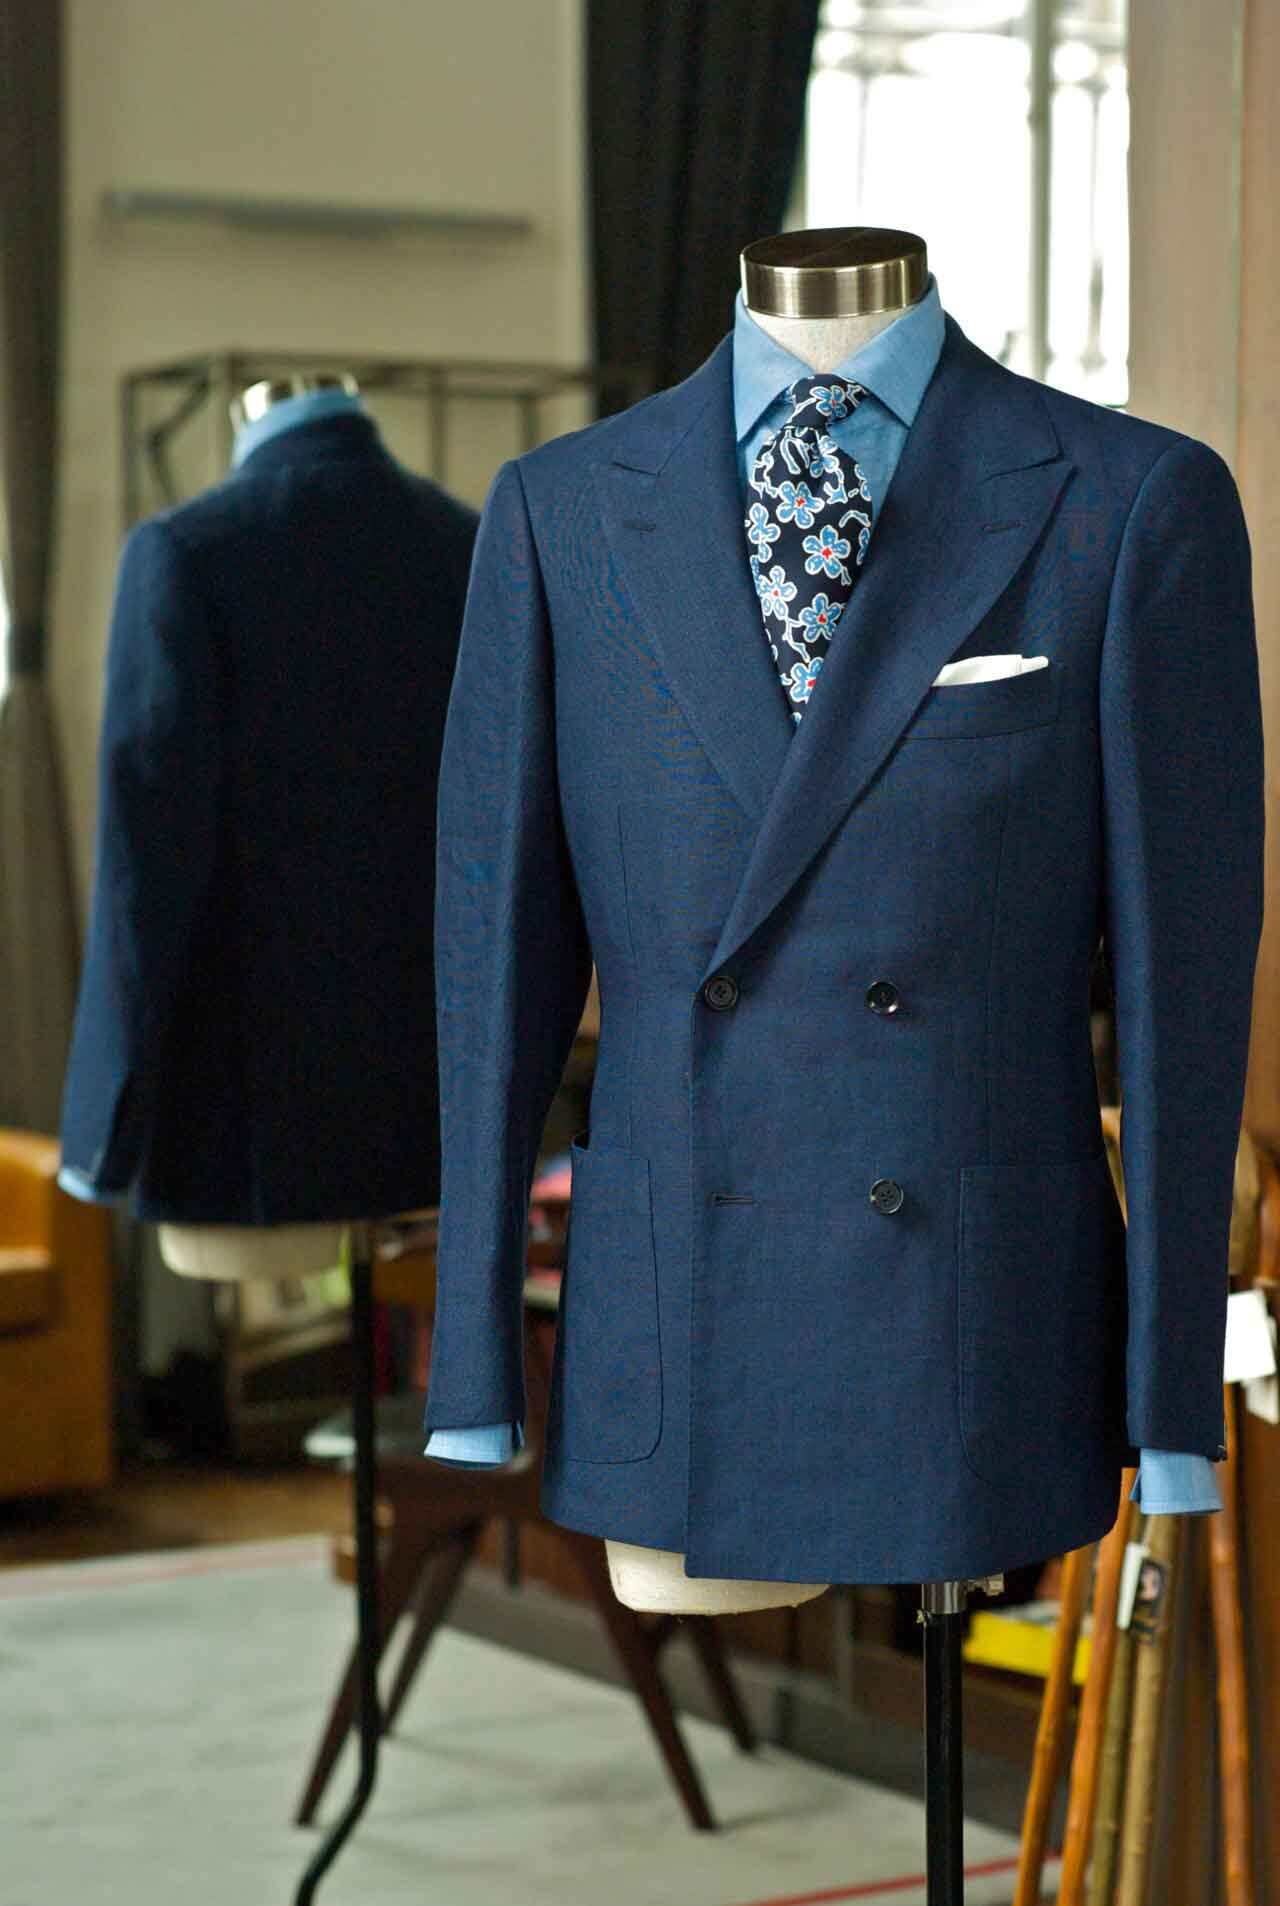 tailor, 裁縫, 裁縫店, 西裝, suit, bespoke